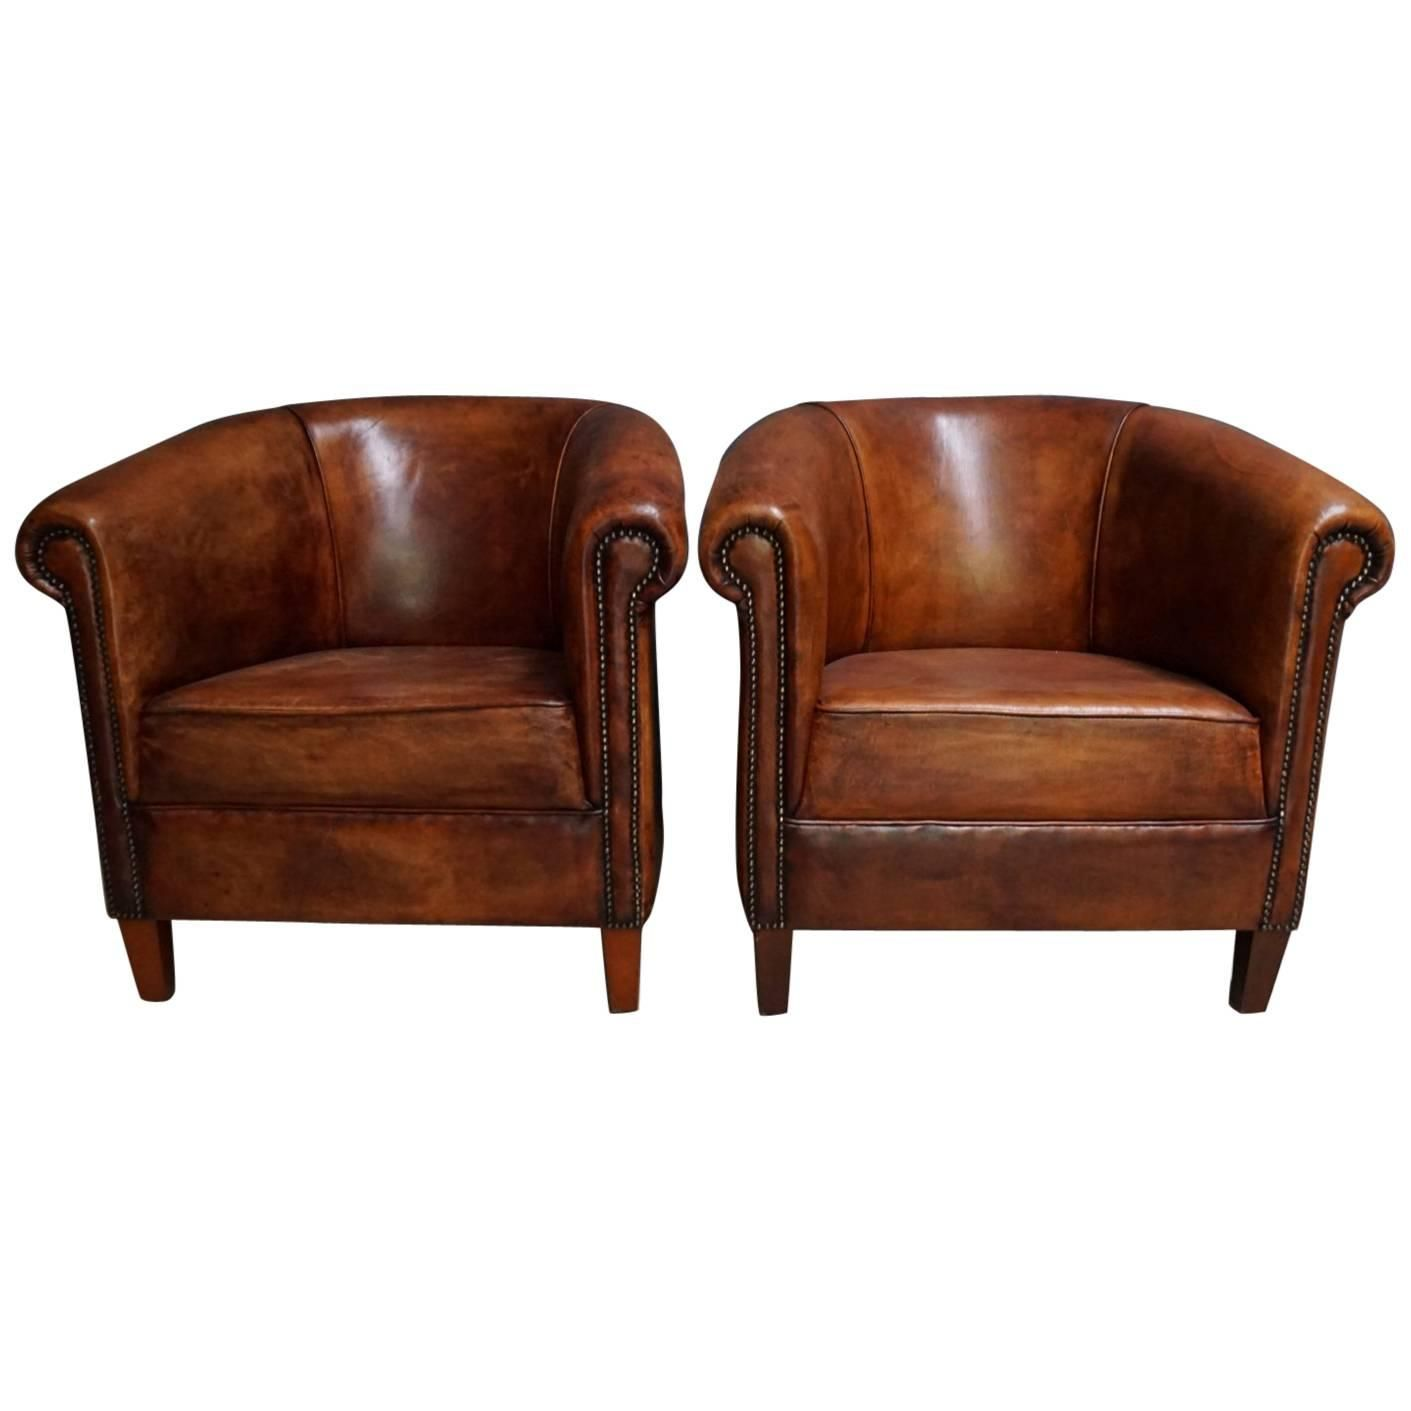 Leather Club Chair Storiestrending Com Club Chairs Swivel Club Chairs Shabby Chic Table And Chairs Leather club chairs for sale